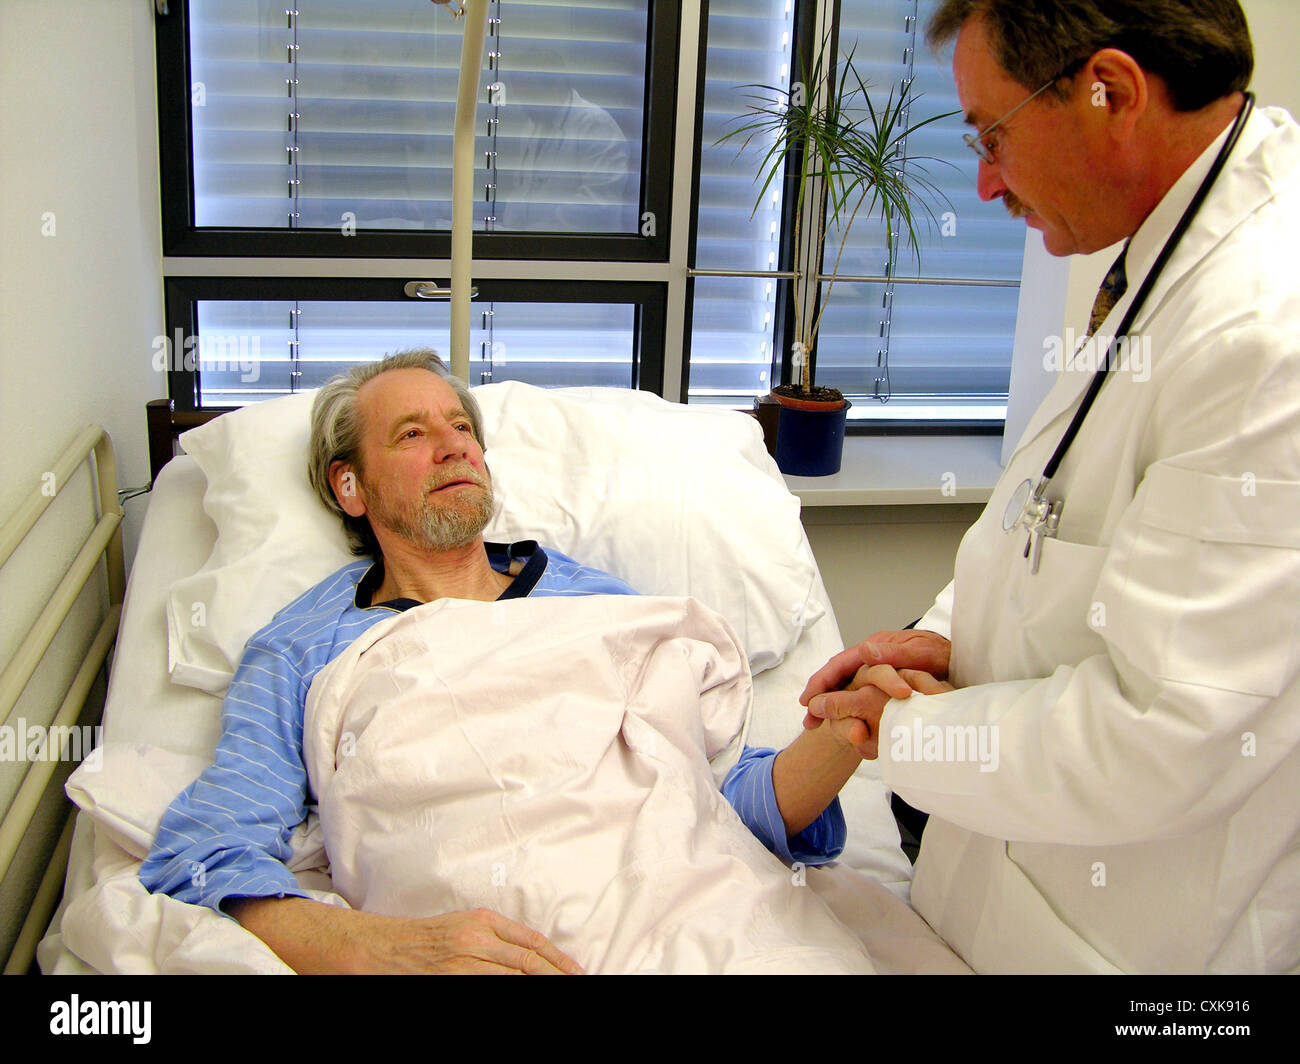 Doctor's visit in the hospital Stock Photo